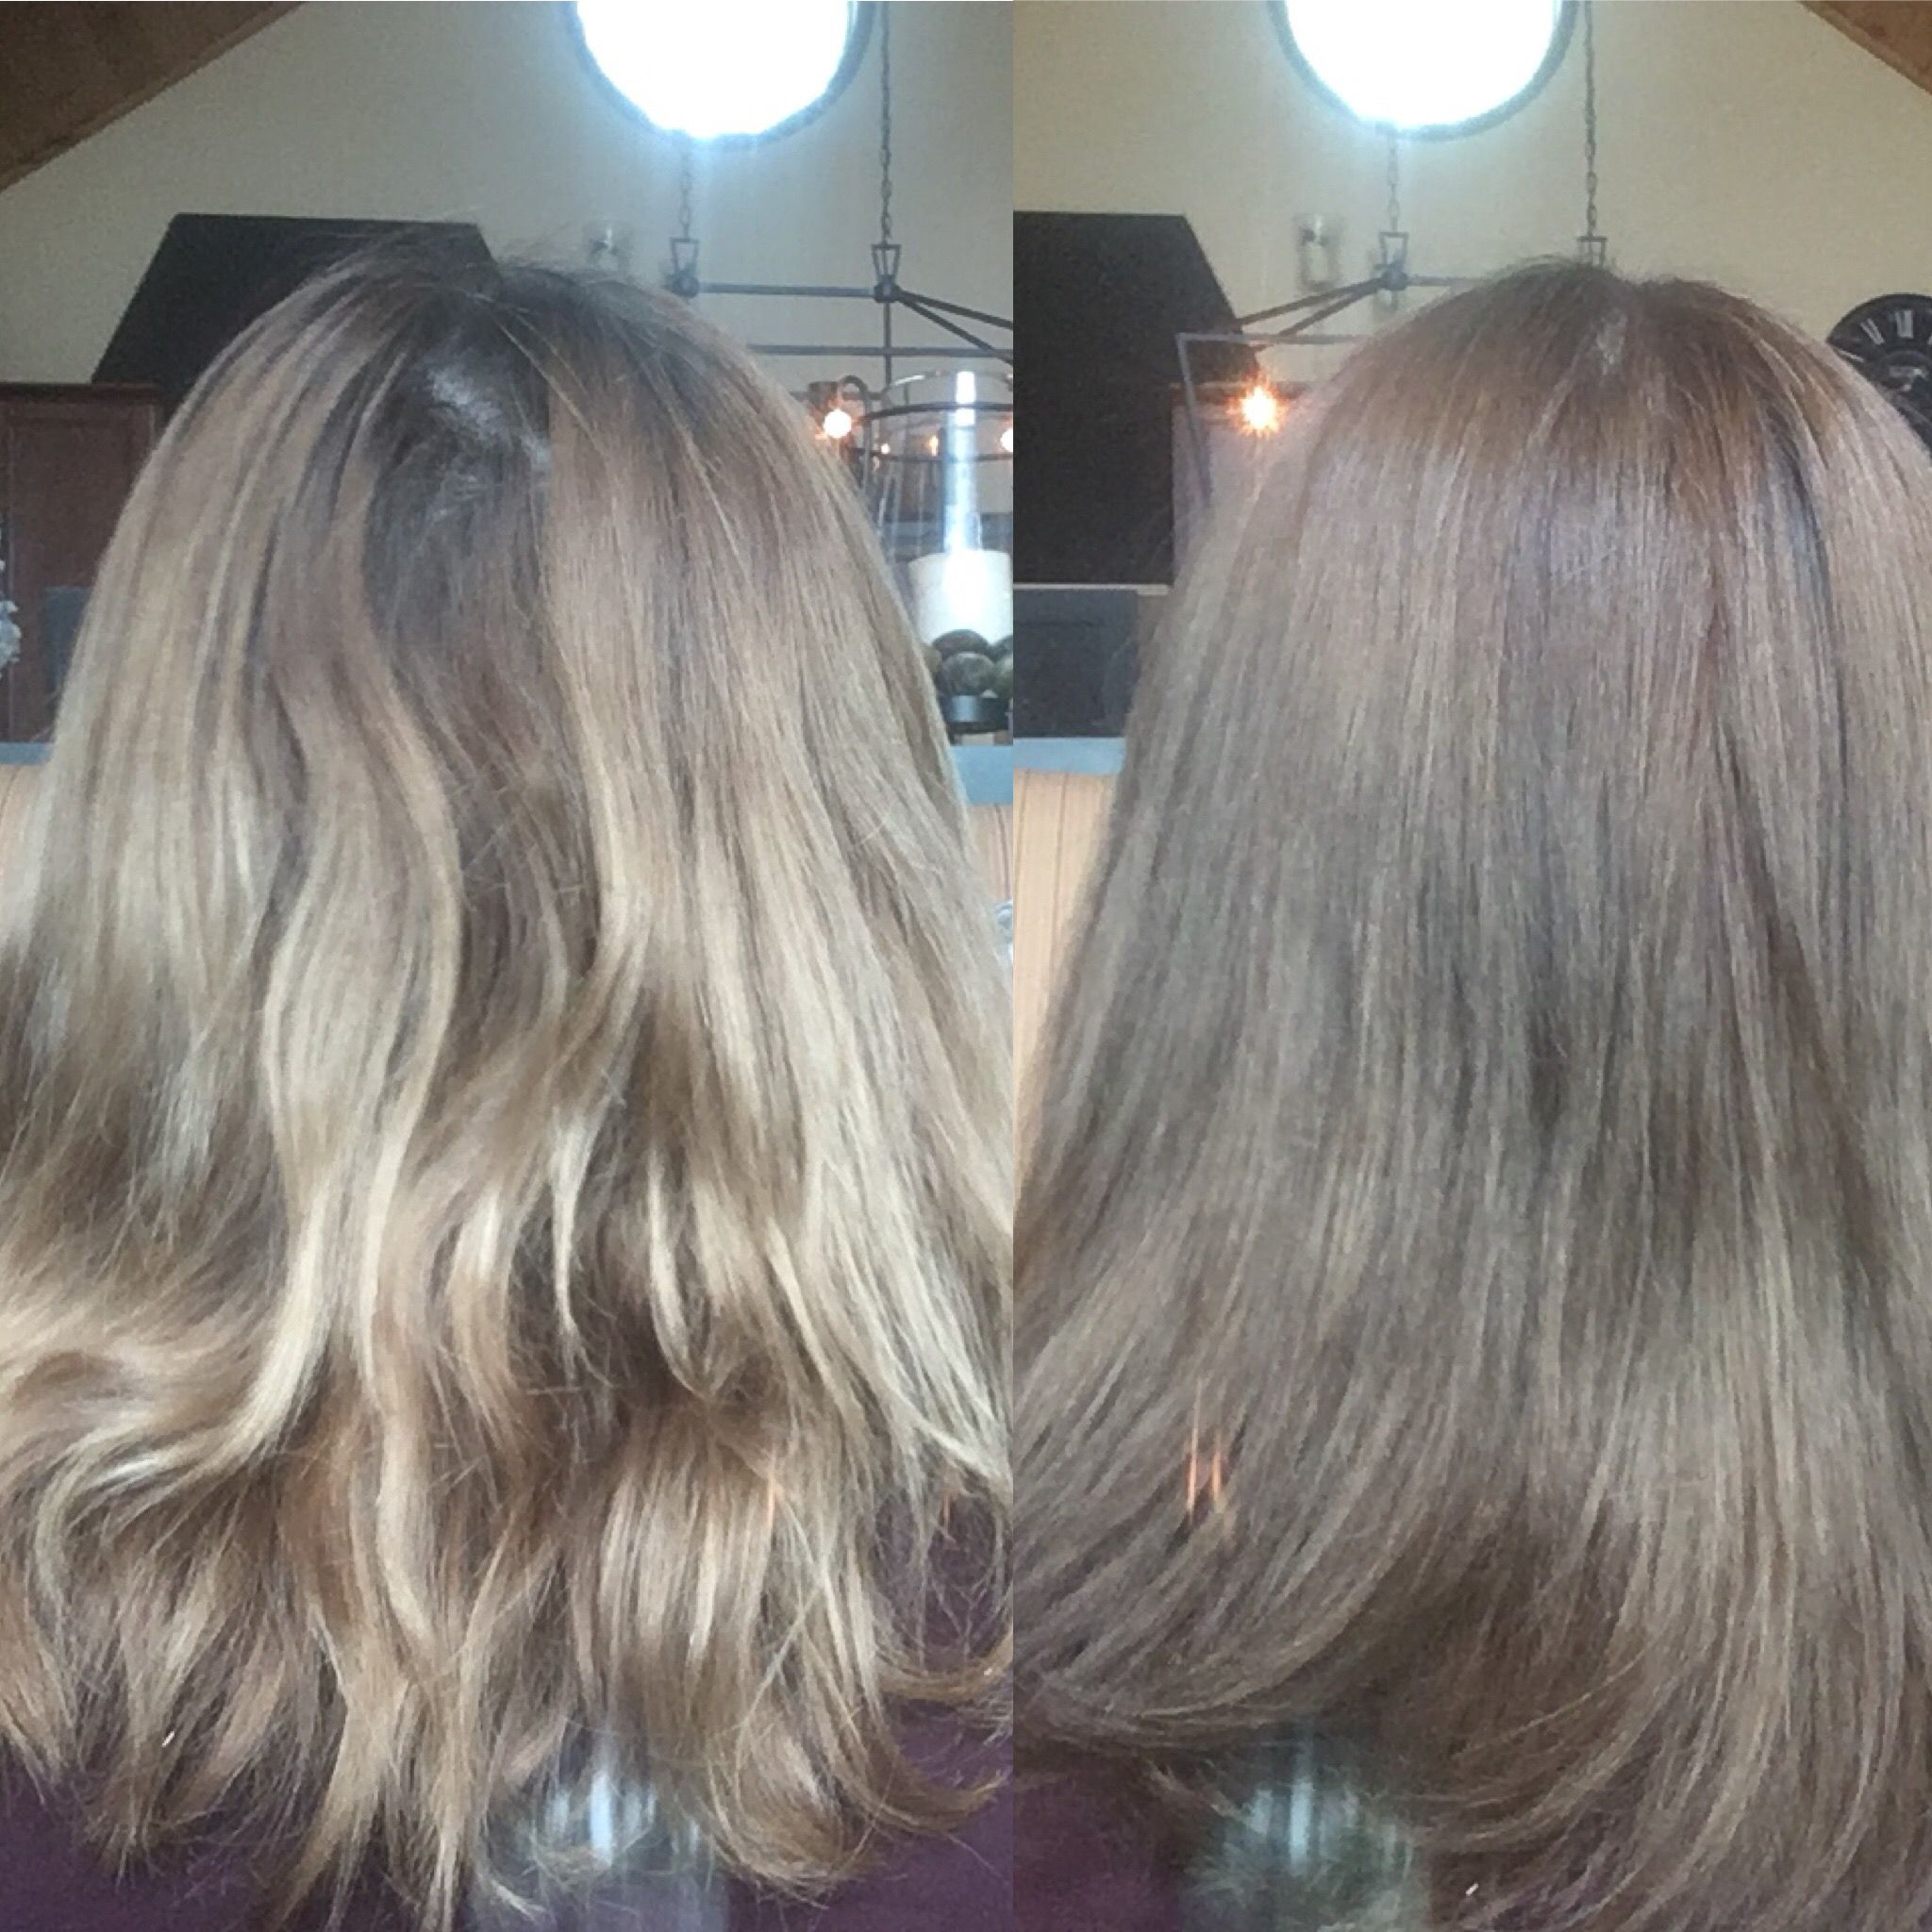 Before And After Wella Colour Gel Permanent Dye 7a672 Medium